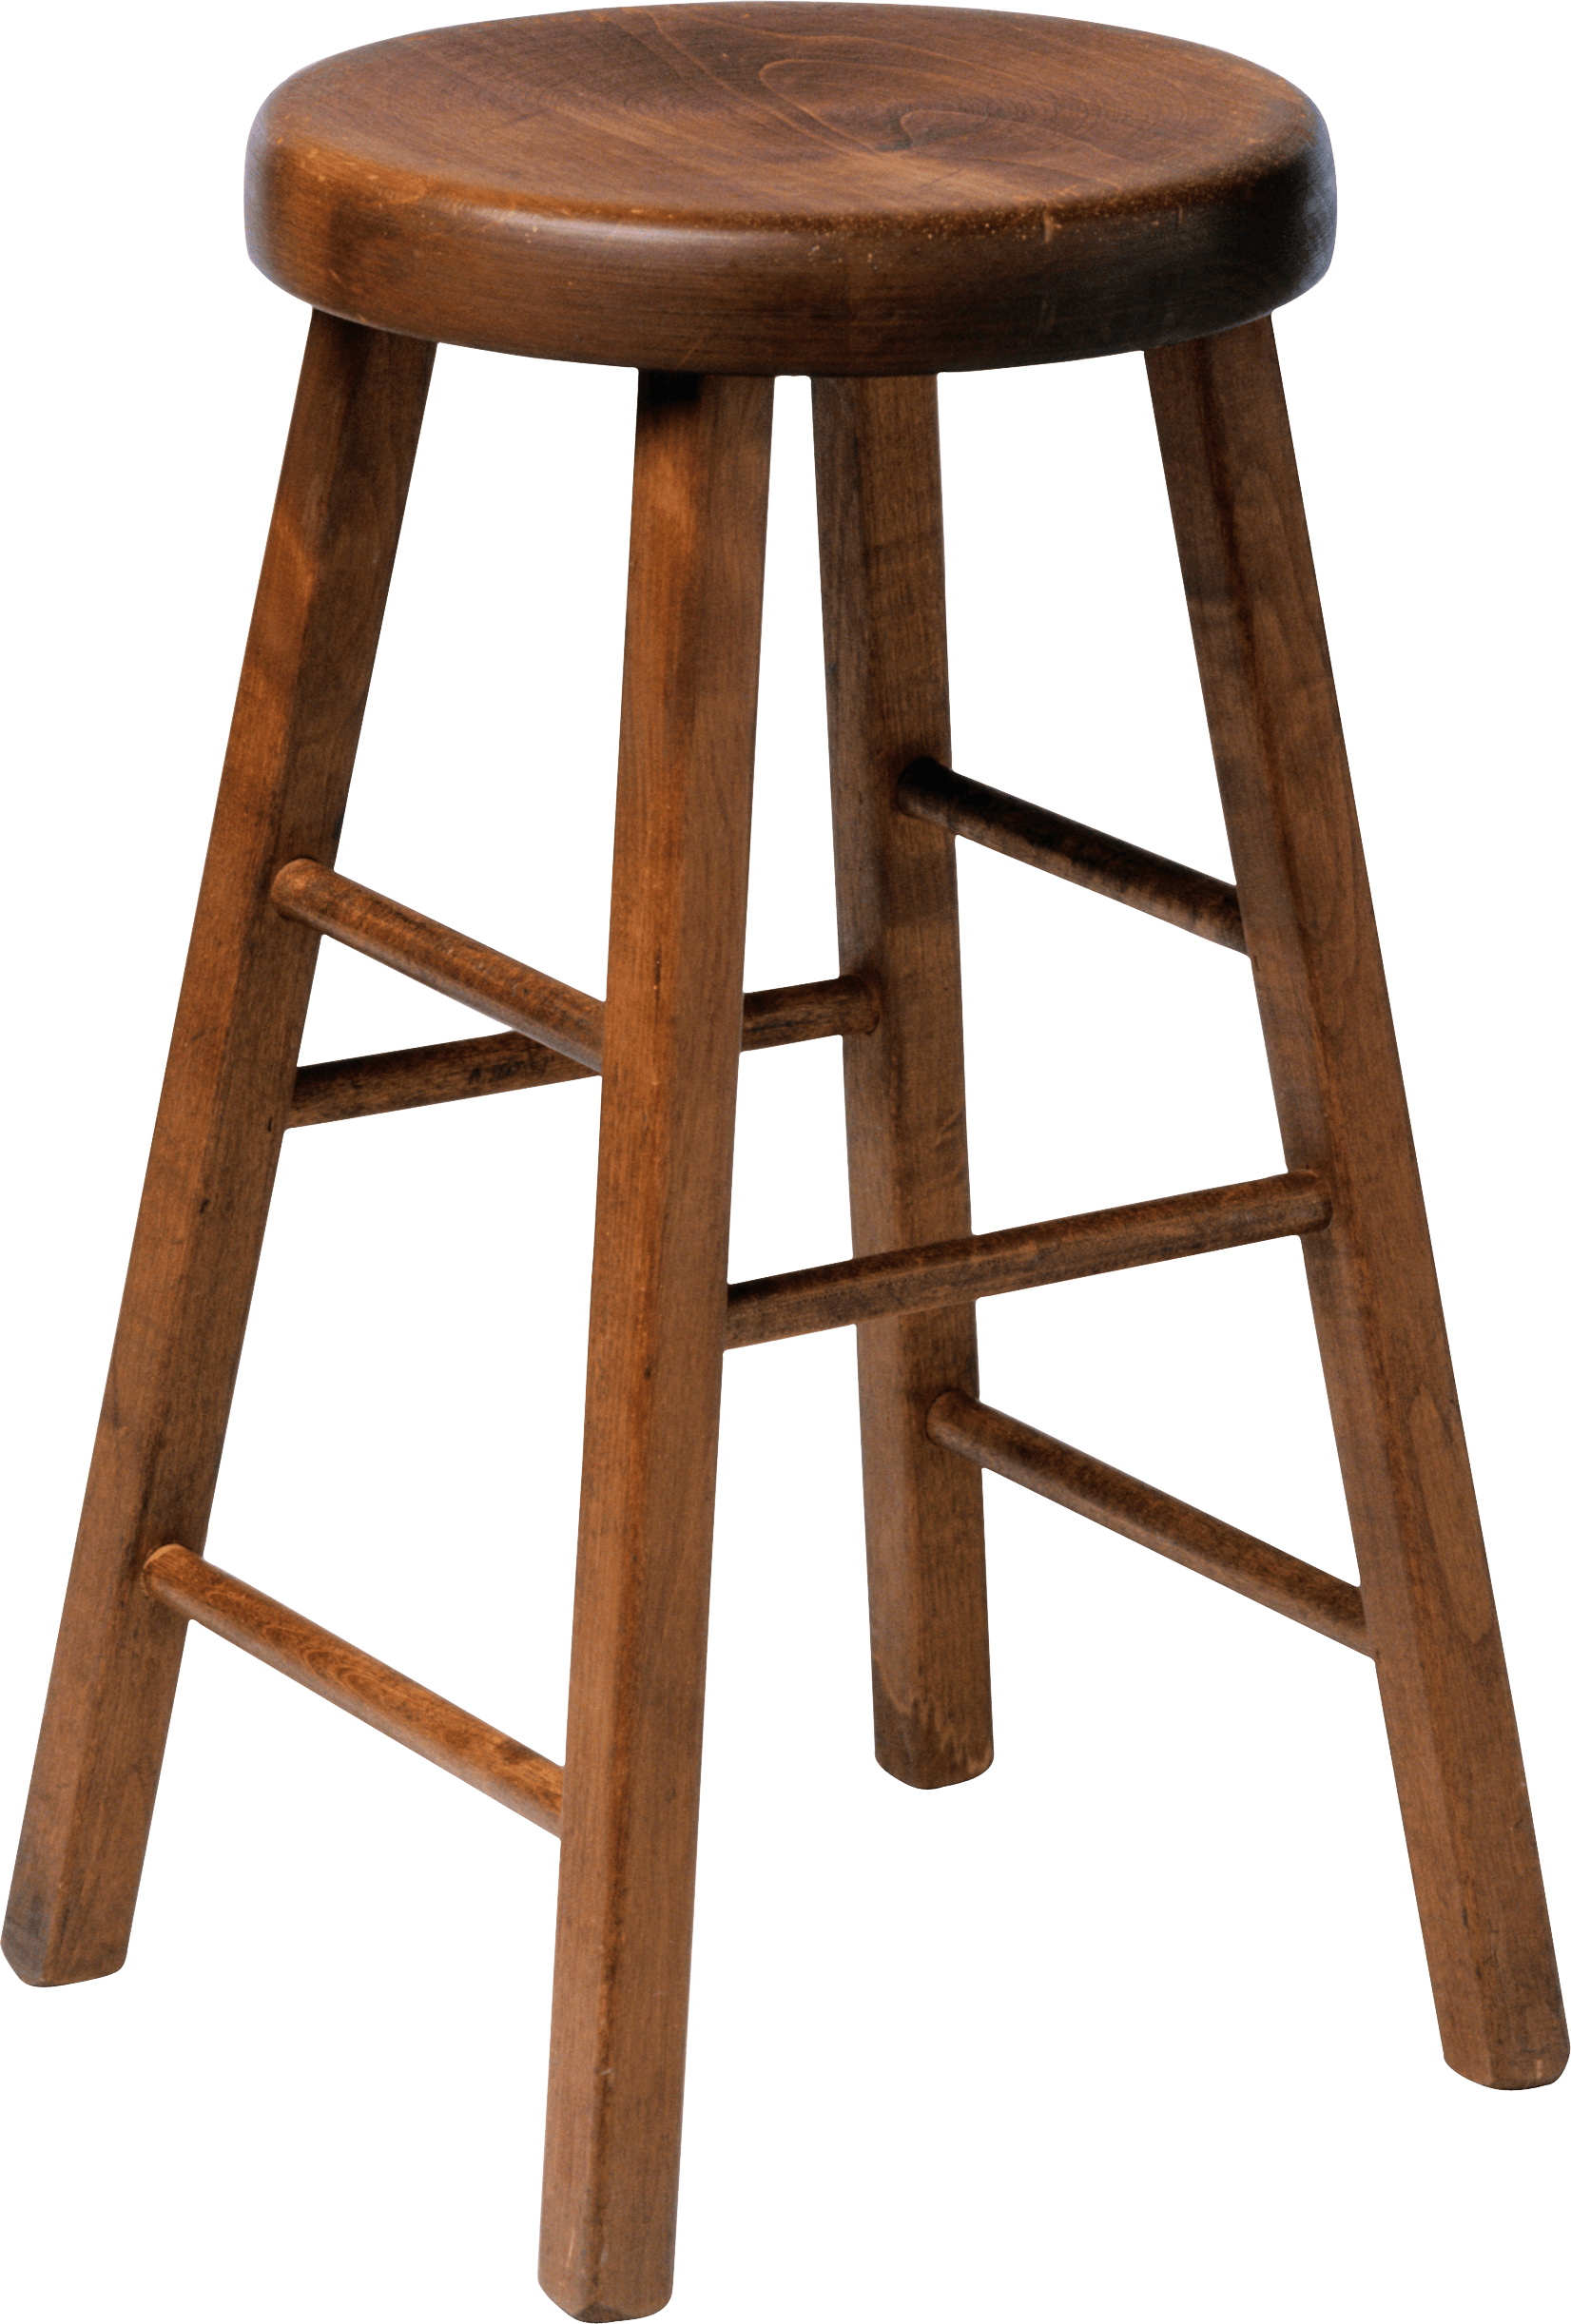 Wooden stool transparent png. Clipart chair old